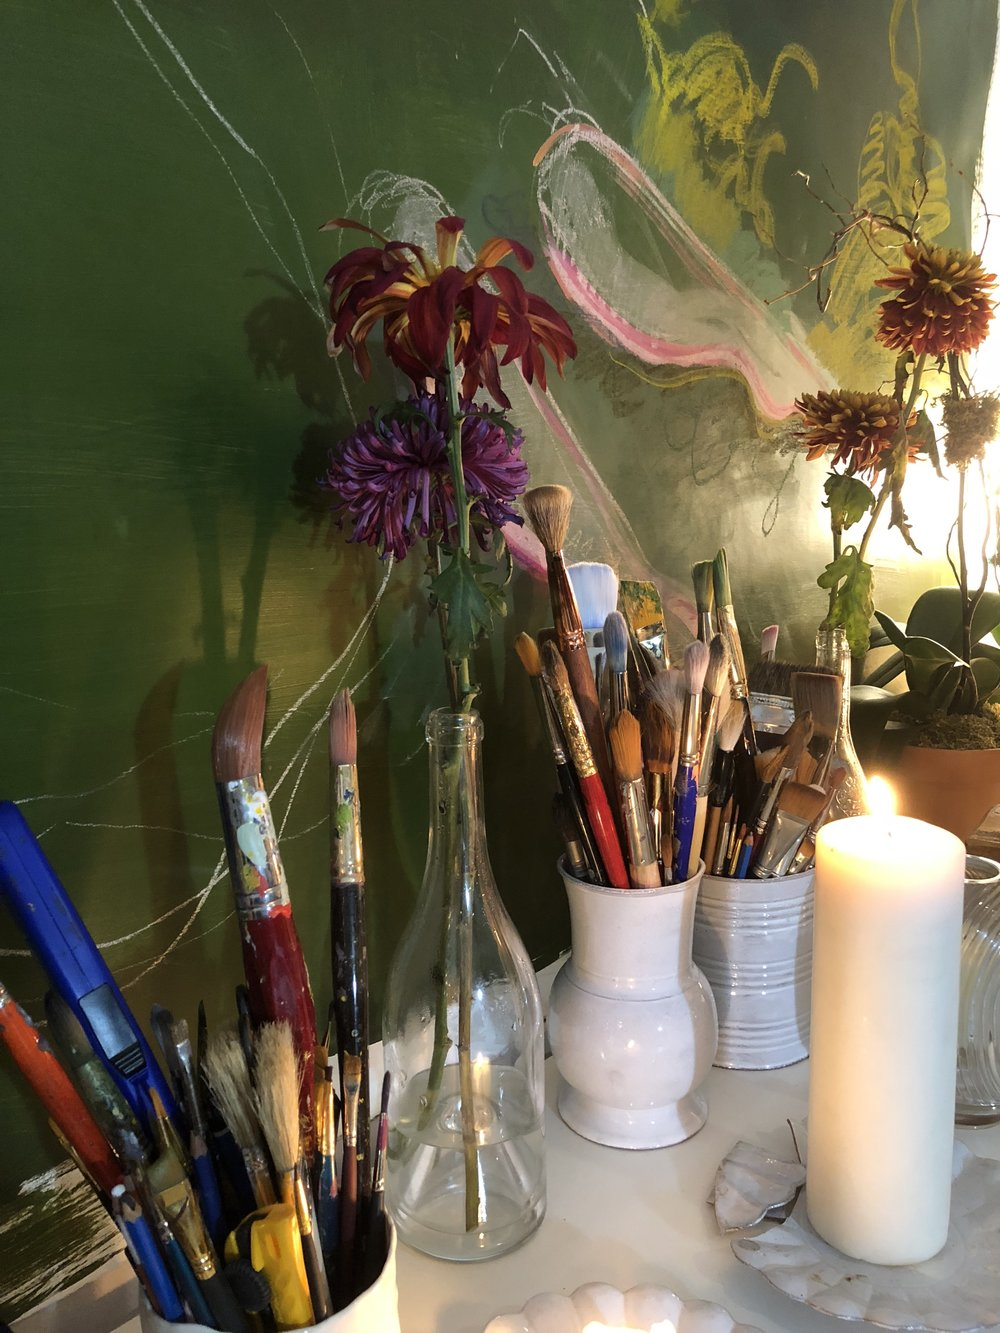 Katie's  studio is such an inspirational and colorful place to work